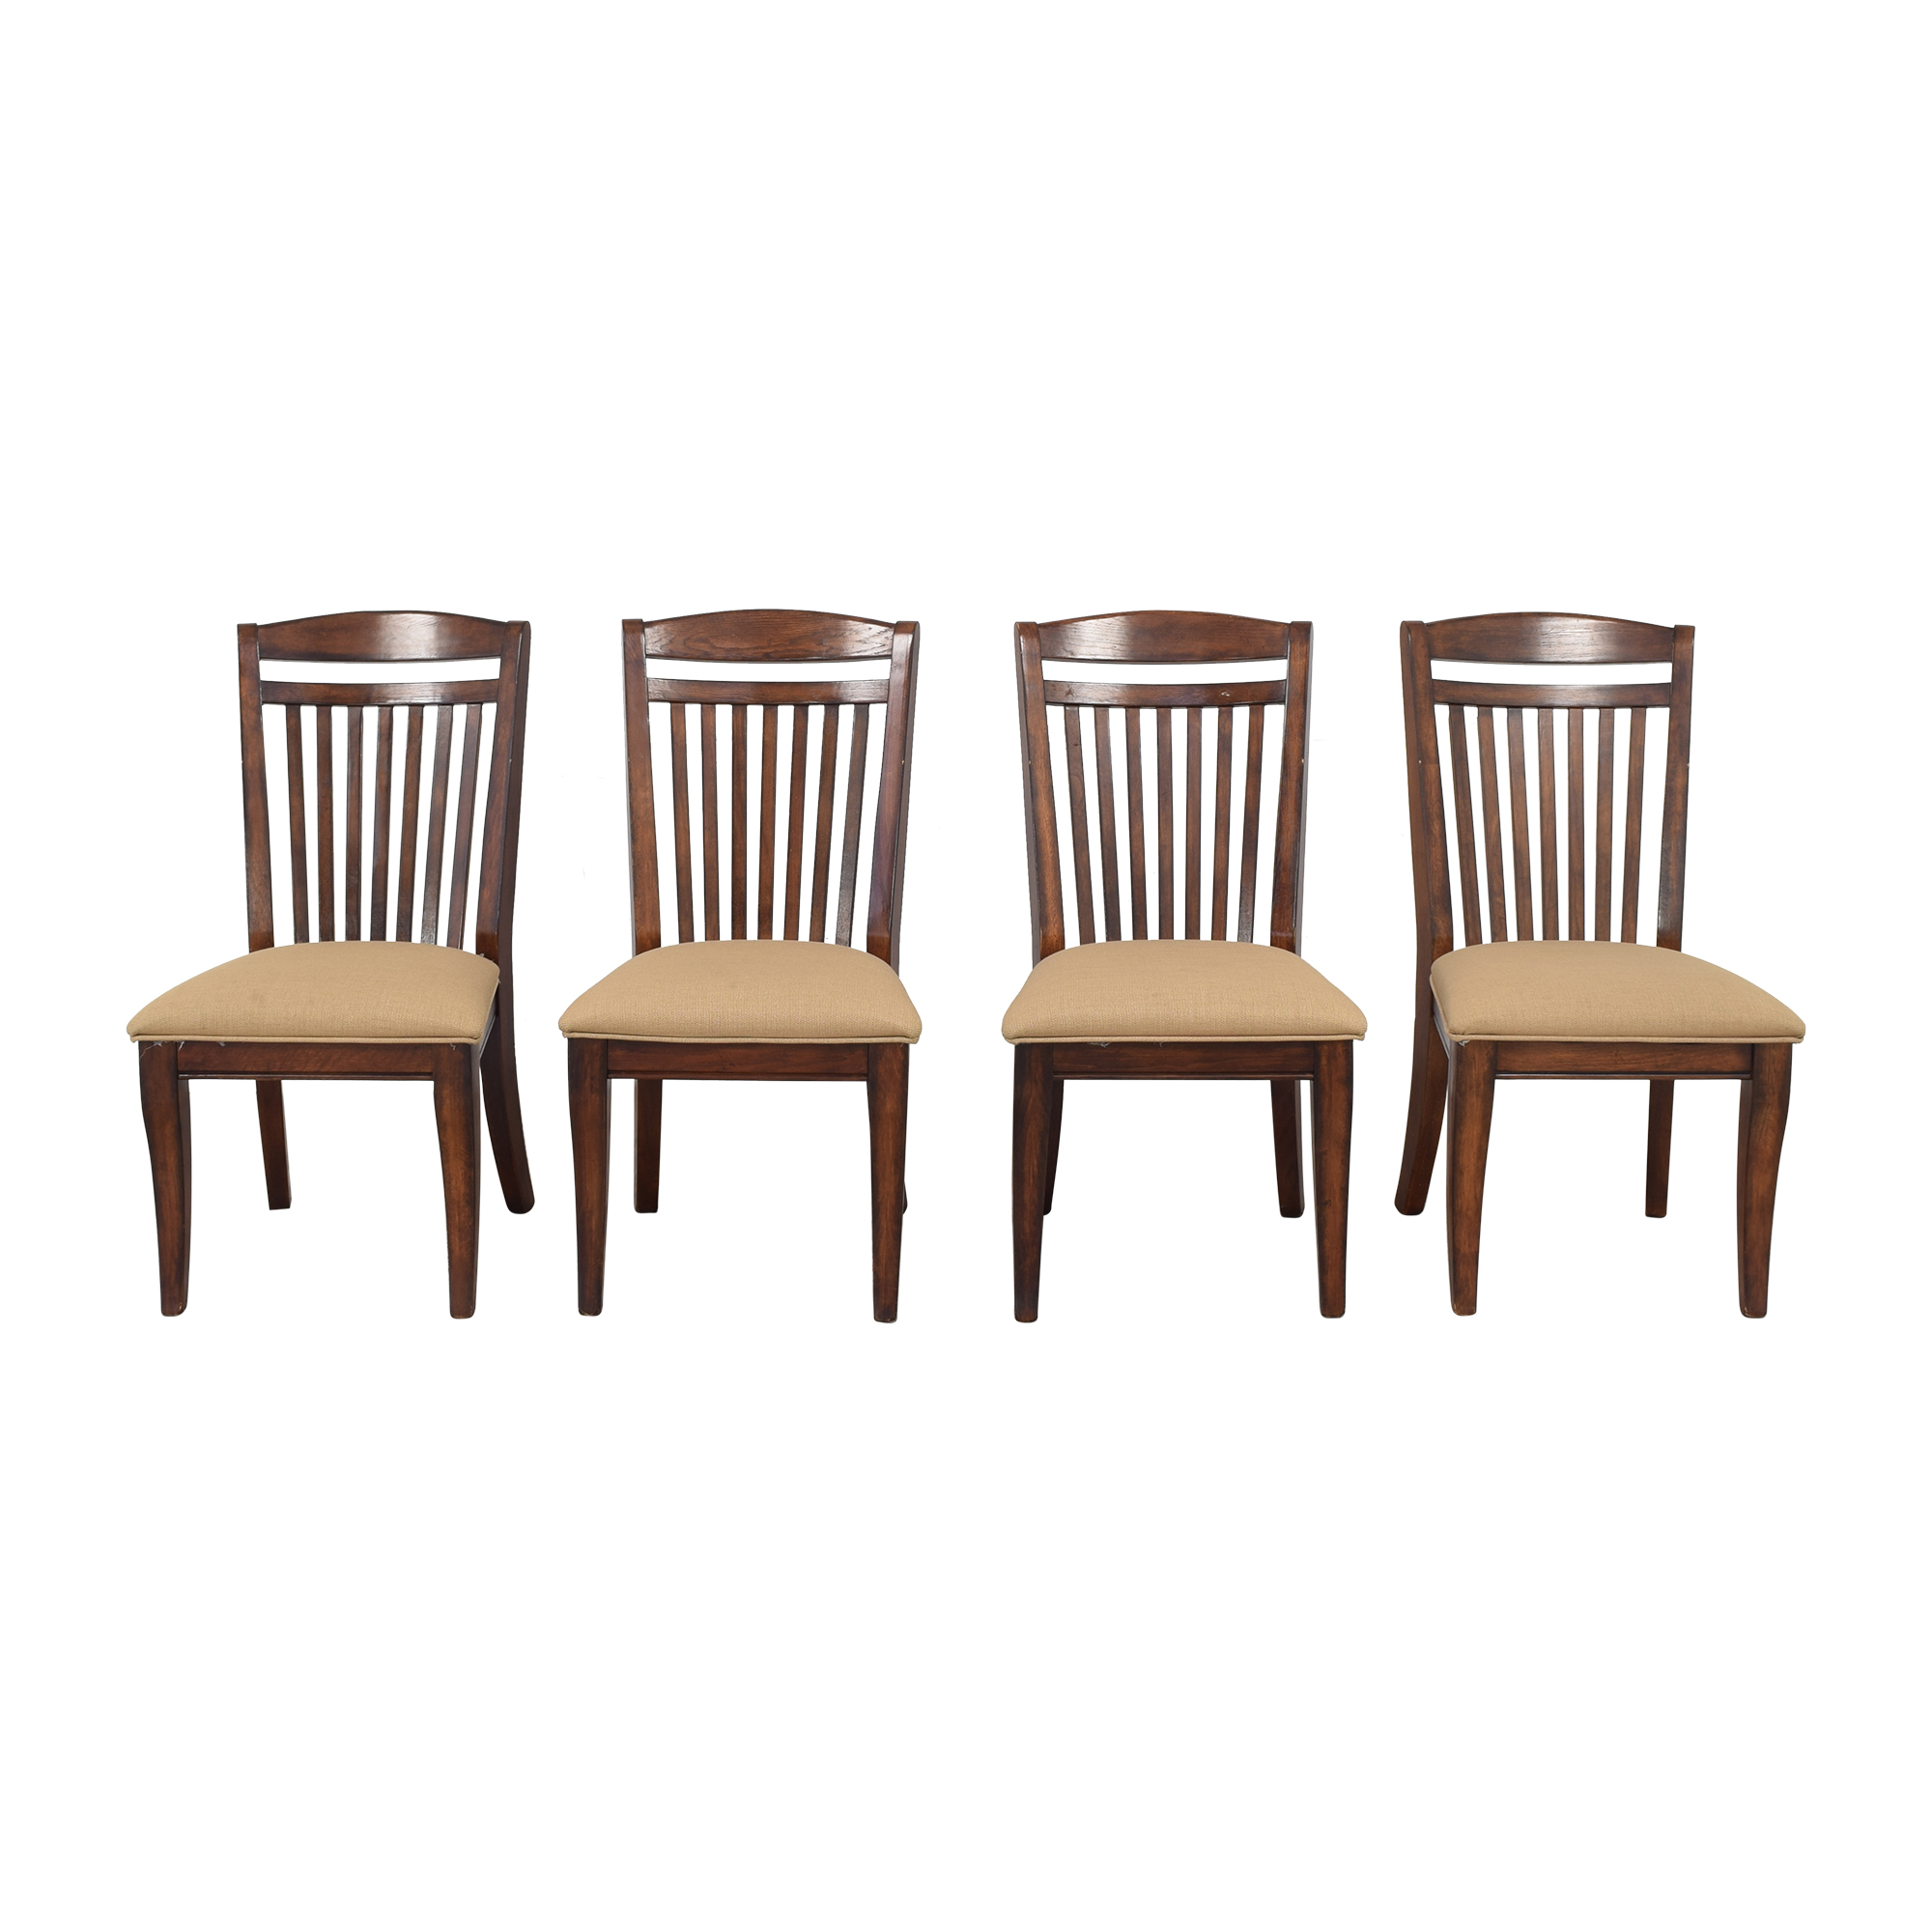 Raymour & Flanigan Raymour & Flanigan Dining Chairs price